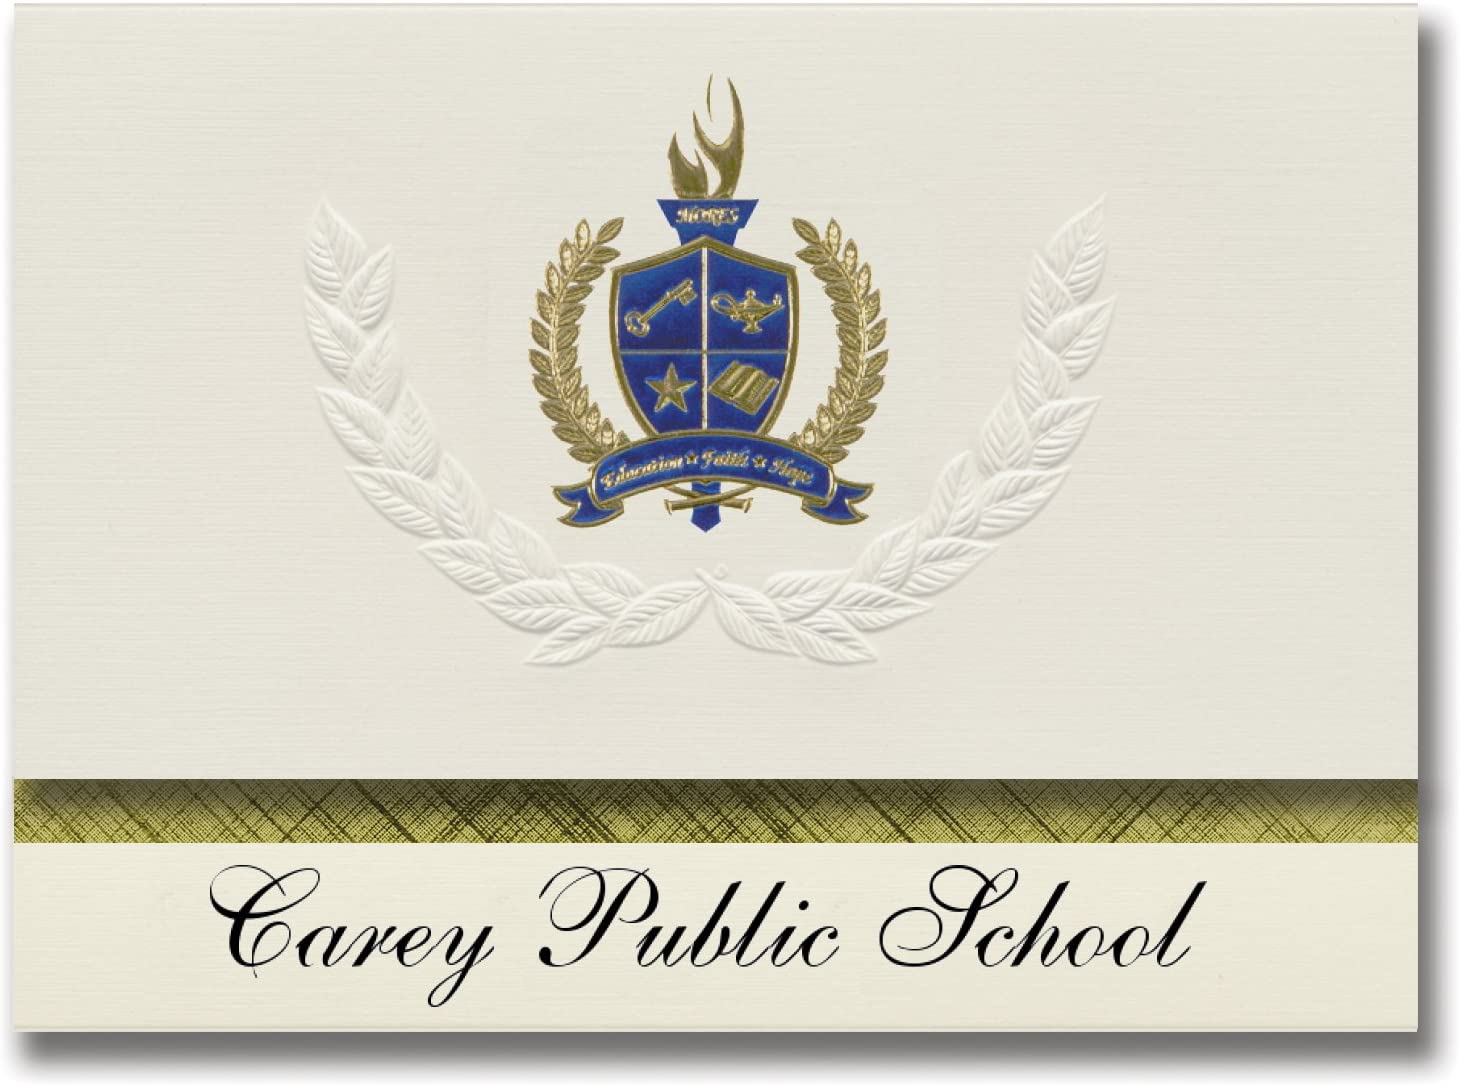 Signature Announcements Carey Public School (Carey, ID) Graduation Announcements, Presidential style, Elite package of 25 with Gold & Blue Metallic Foil seal